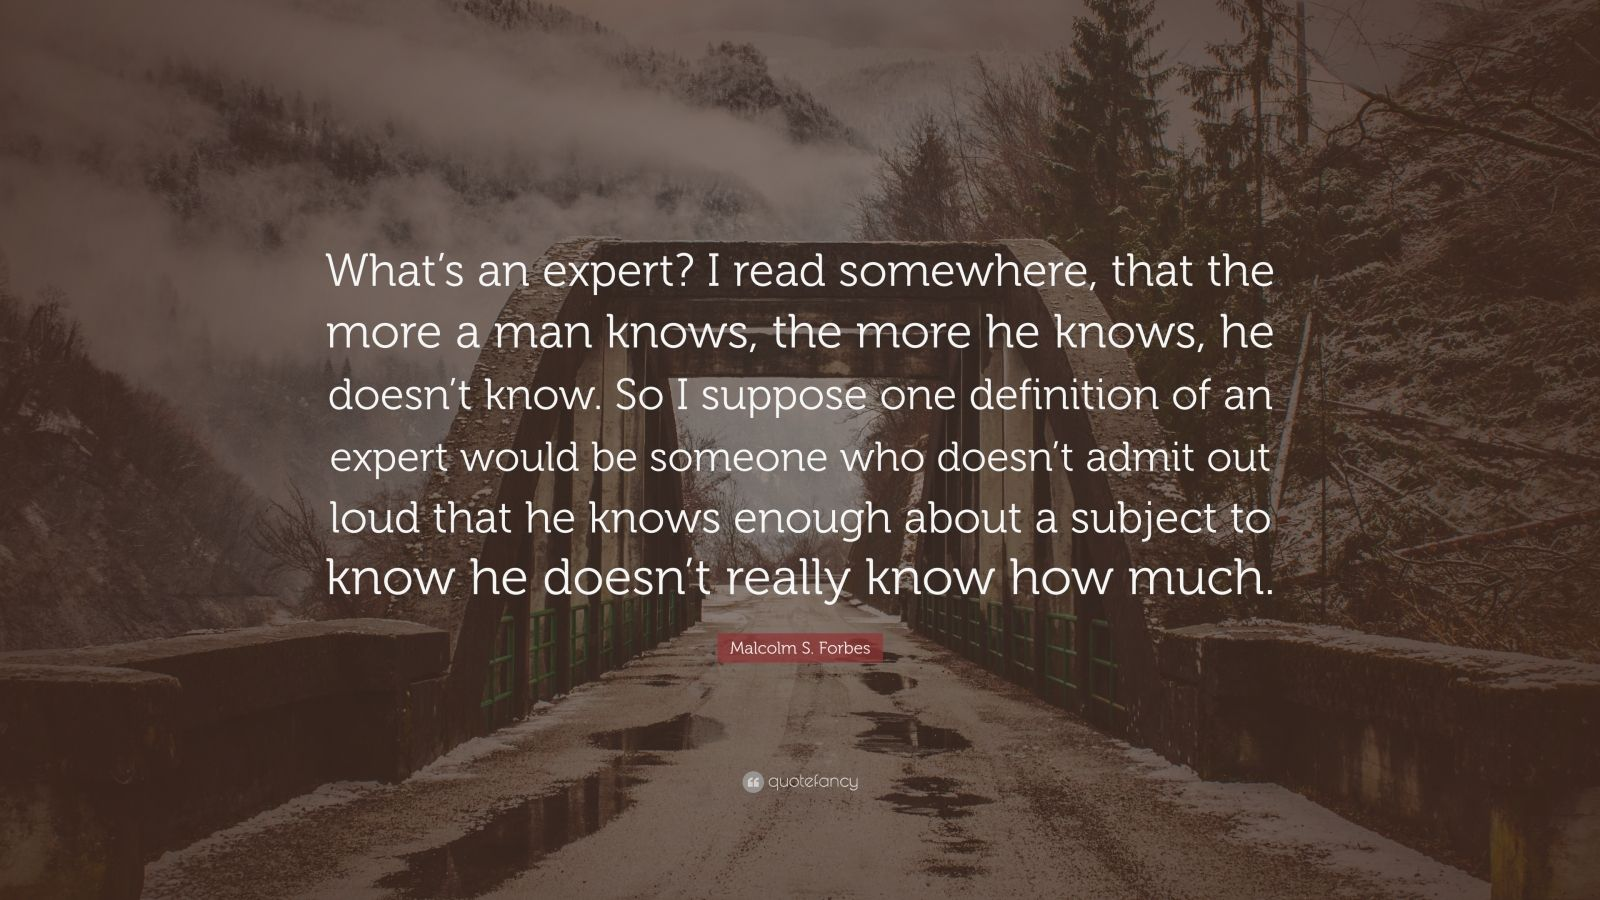 "Malcolm S. Forbes Quote: ""What's an expert? I read somewhere, that the more a man knows, the more he knows, he doesn't know. So I suppose one definition of an expert would be someone who doesn't admit out loud that he knows enough about a subject to know he doesn't really know how much."""